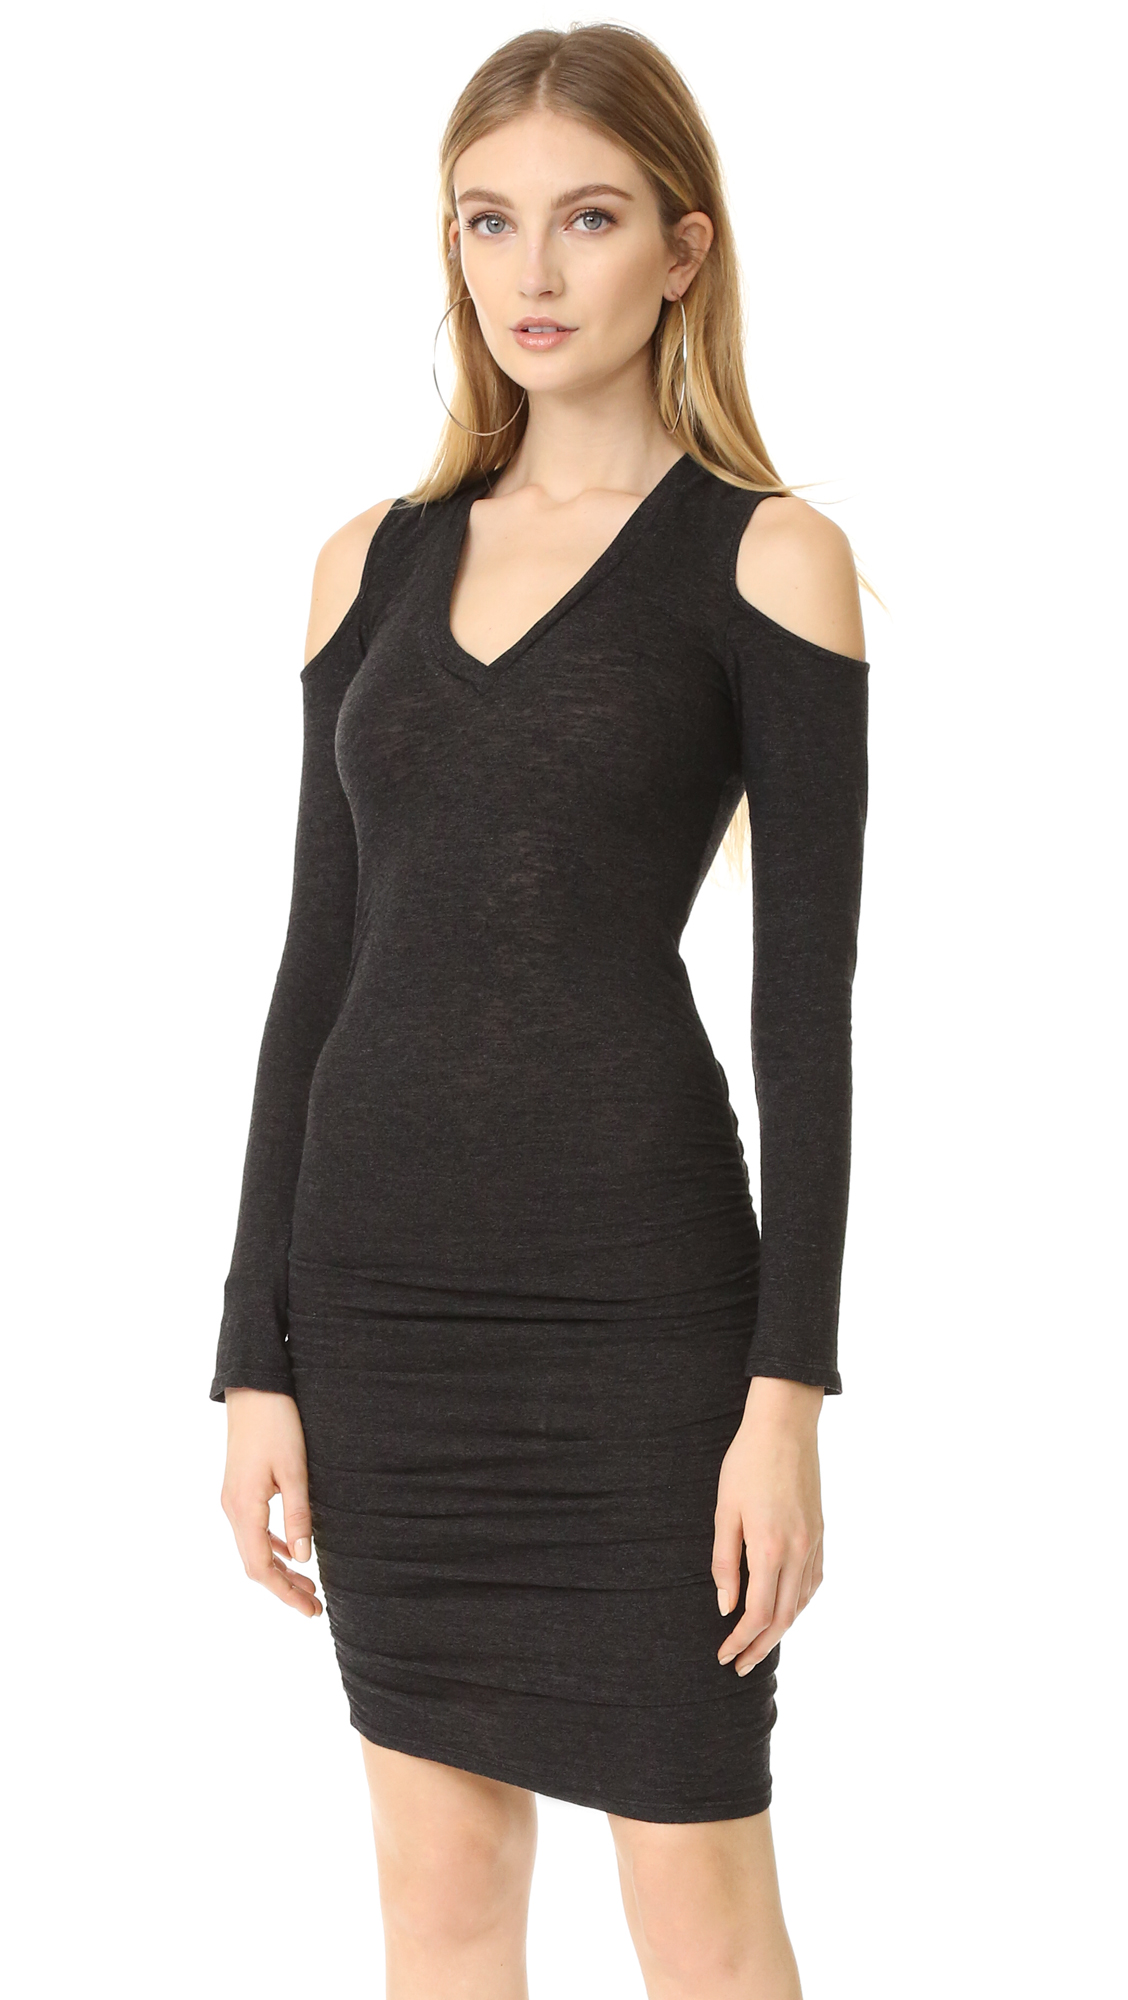 Lanston Cutout V Neck Dress - Black at Shopbop